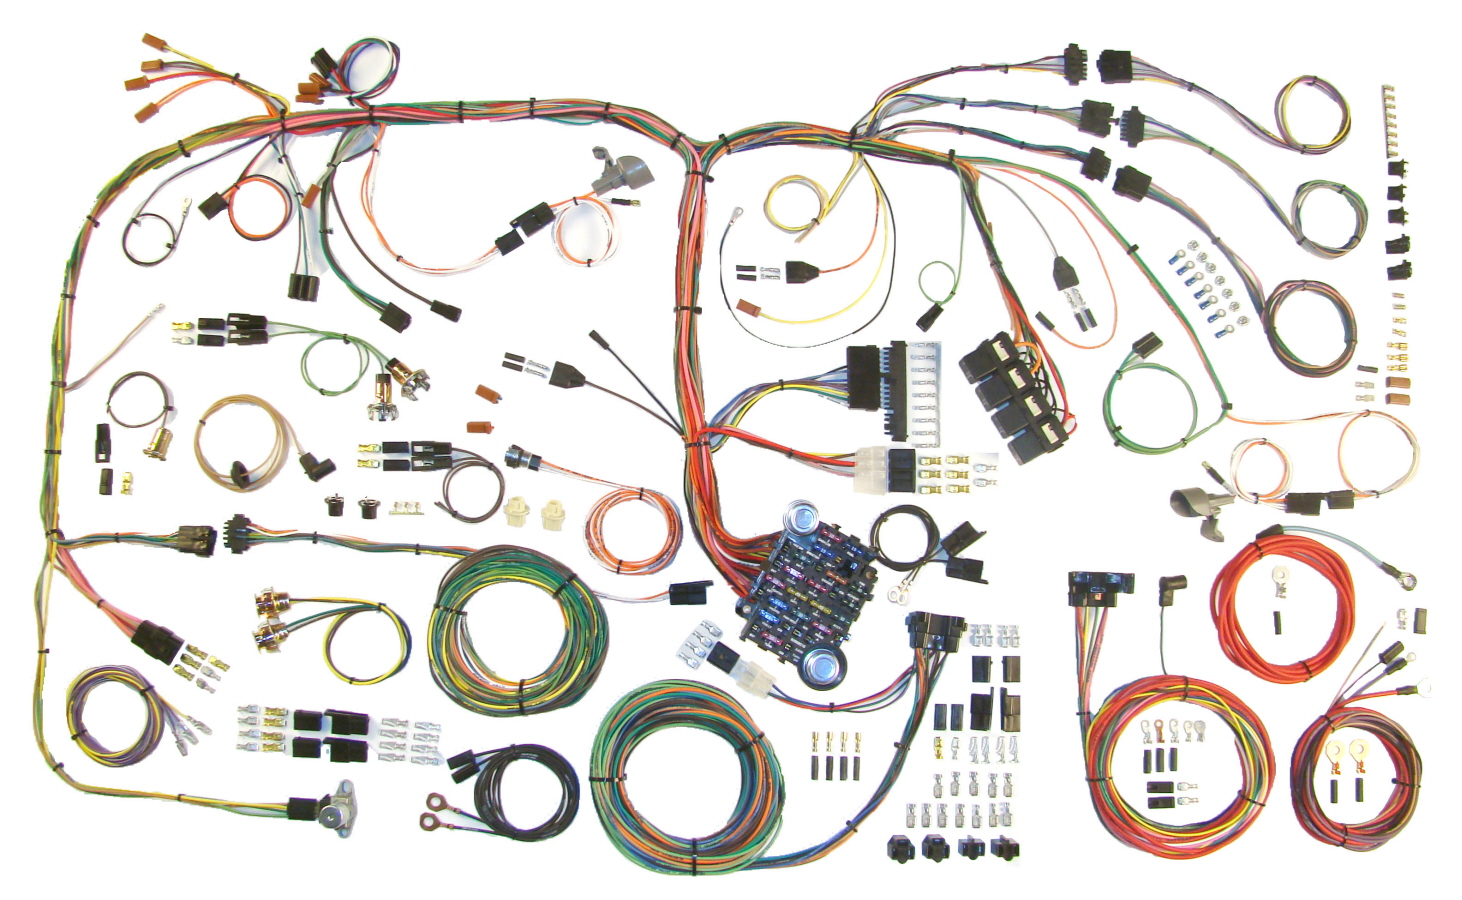 70 74 mopar e body classic update wiring harness 510289 rh mattsclassicbowties com